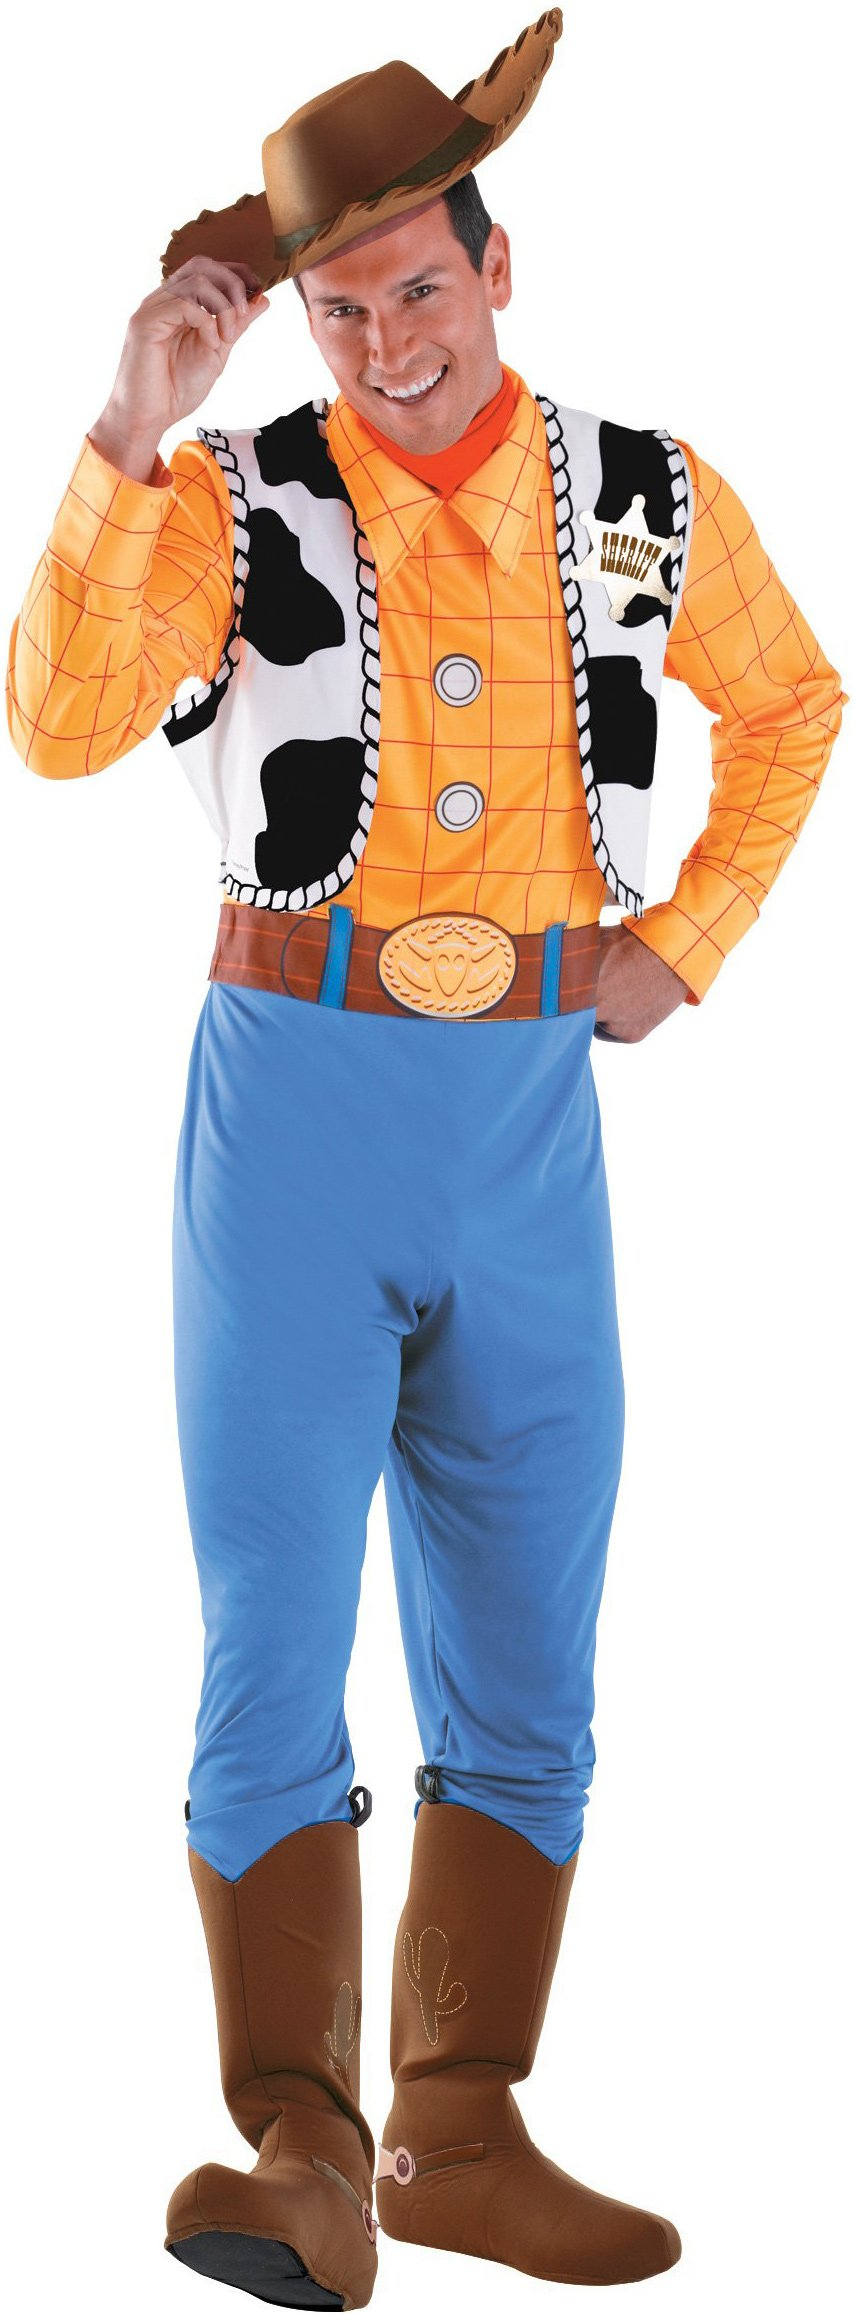 Toy Story - Woody Deluxe Adult Costume